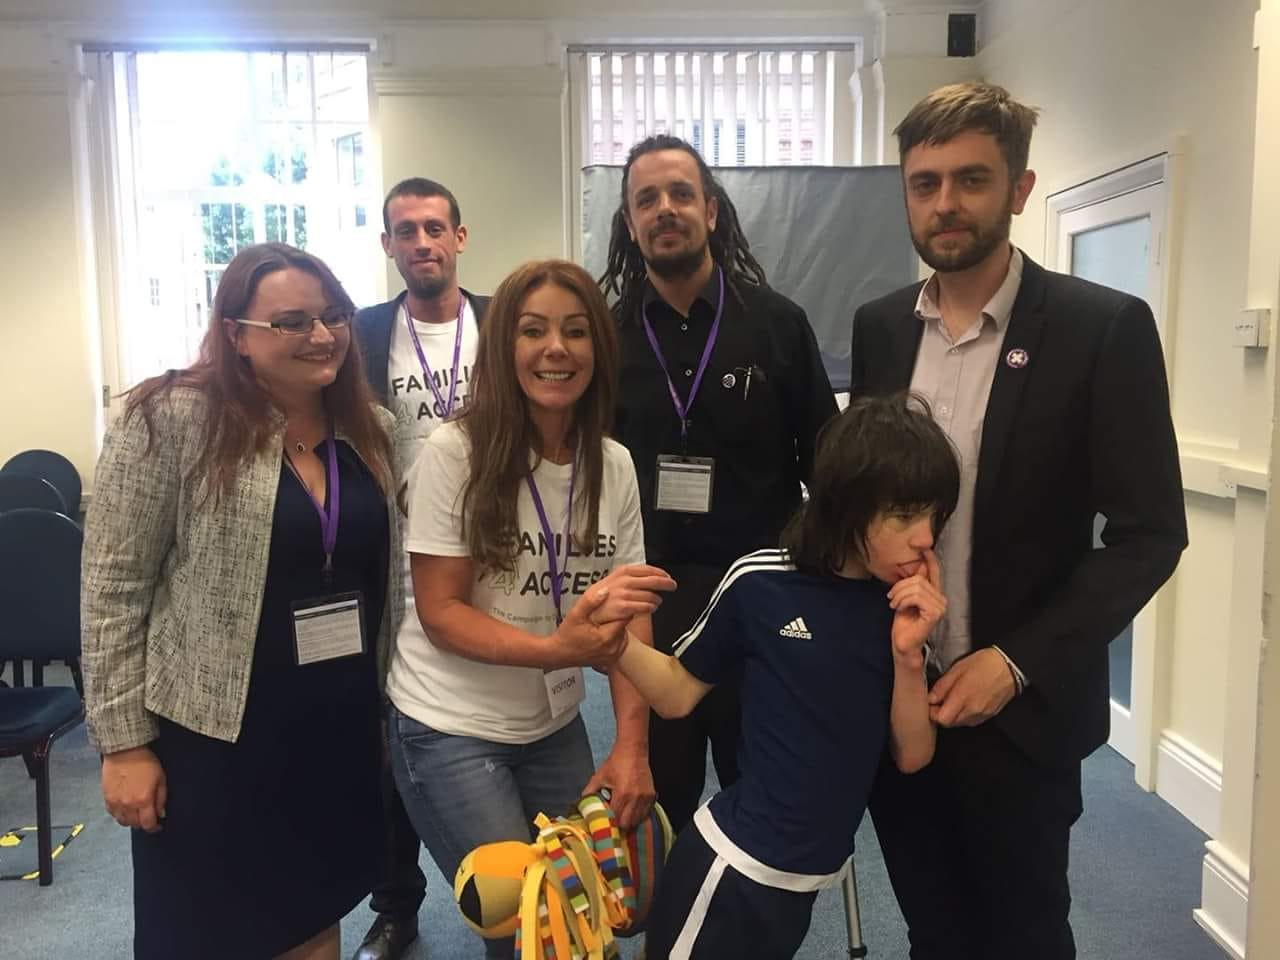 From Left to Right: Faye Jones, Alex Fraser, Keiron Reeves, Clark French -with Charlotte and Billy Caldwell